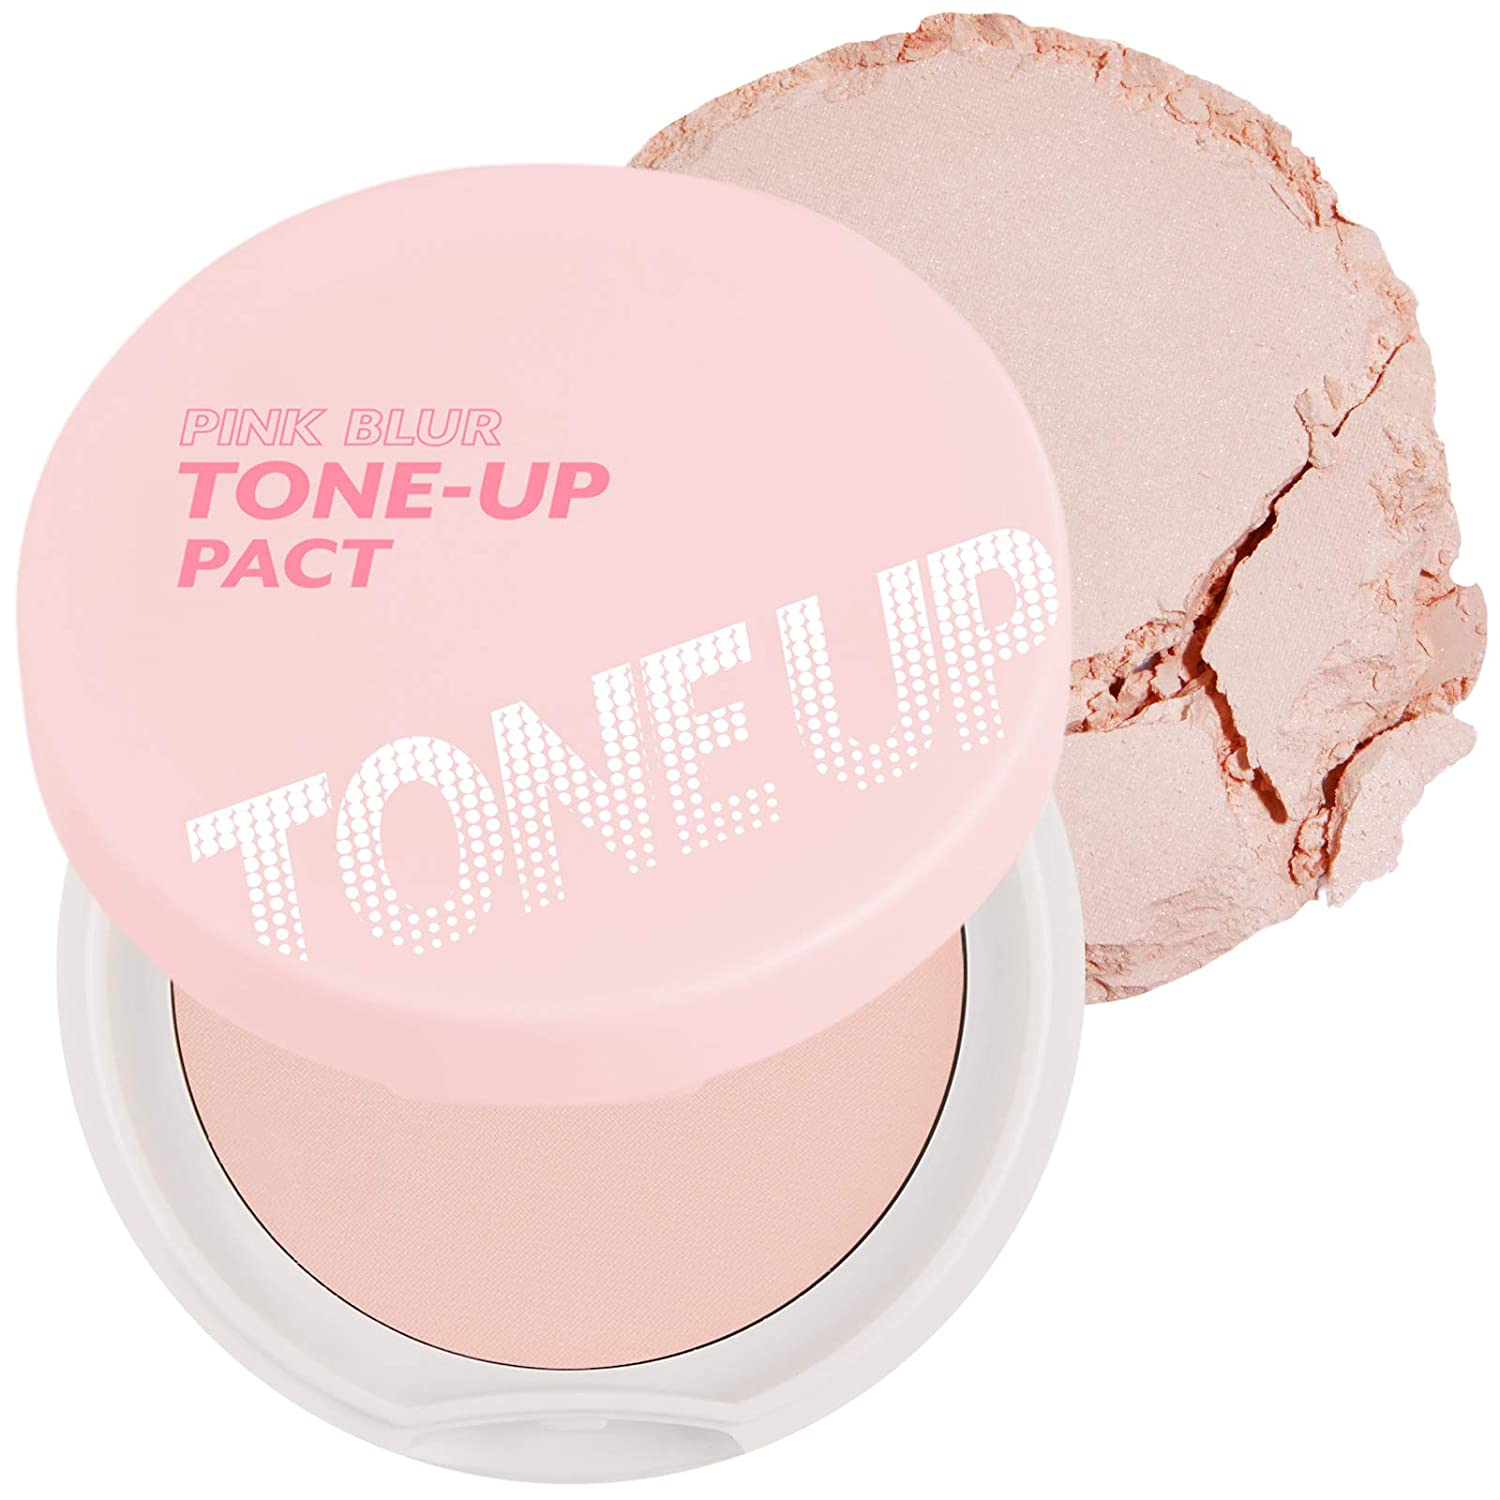 I'M MEME Pink Blur Tone-up Pact Pressed to Detroit Max 46% OFF Mall Powder